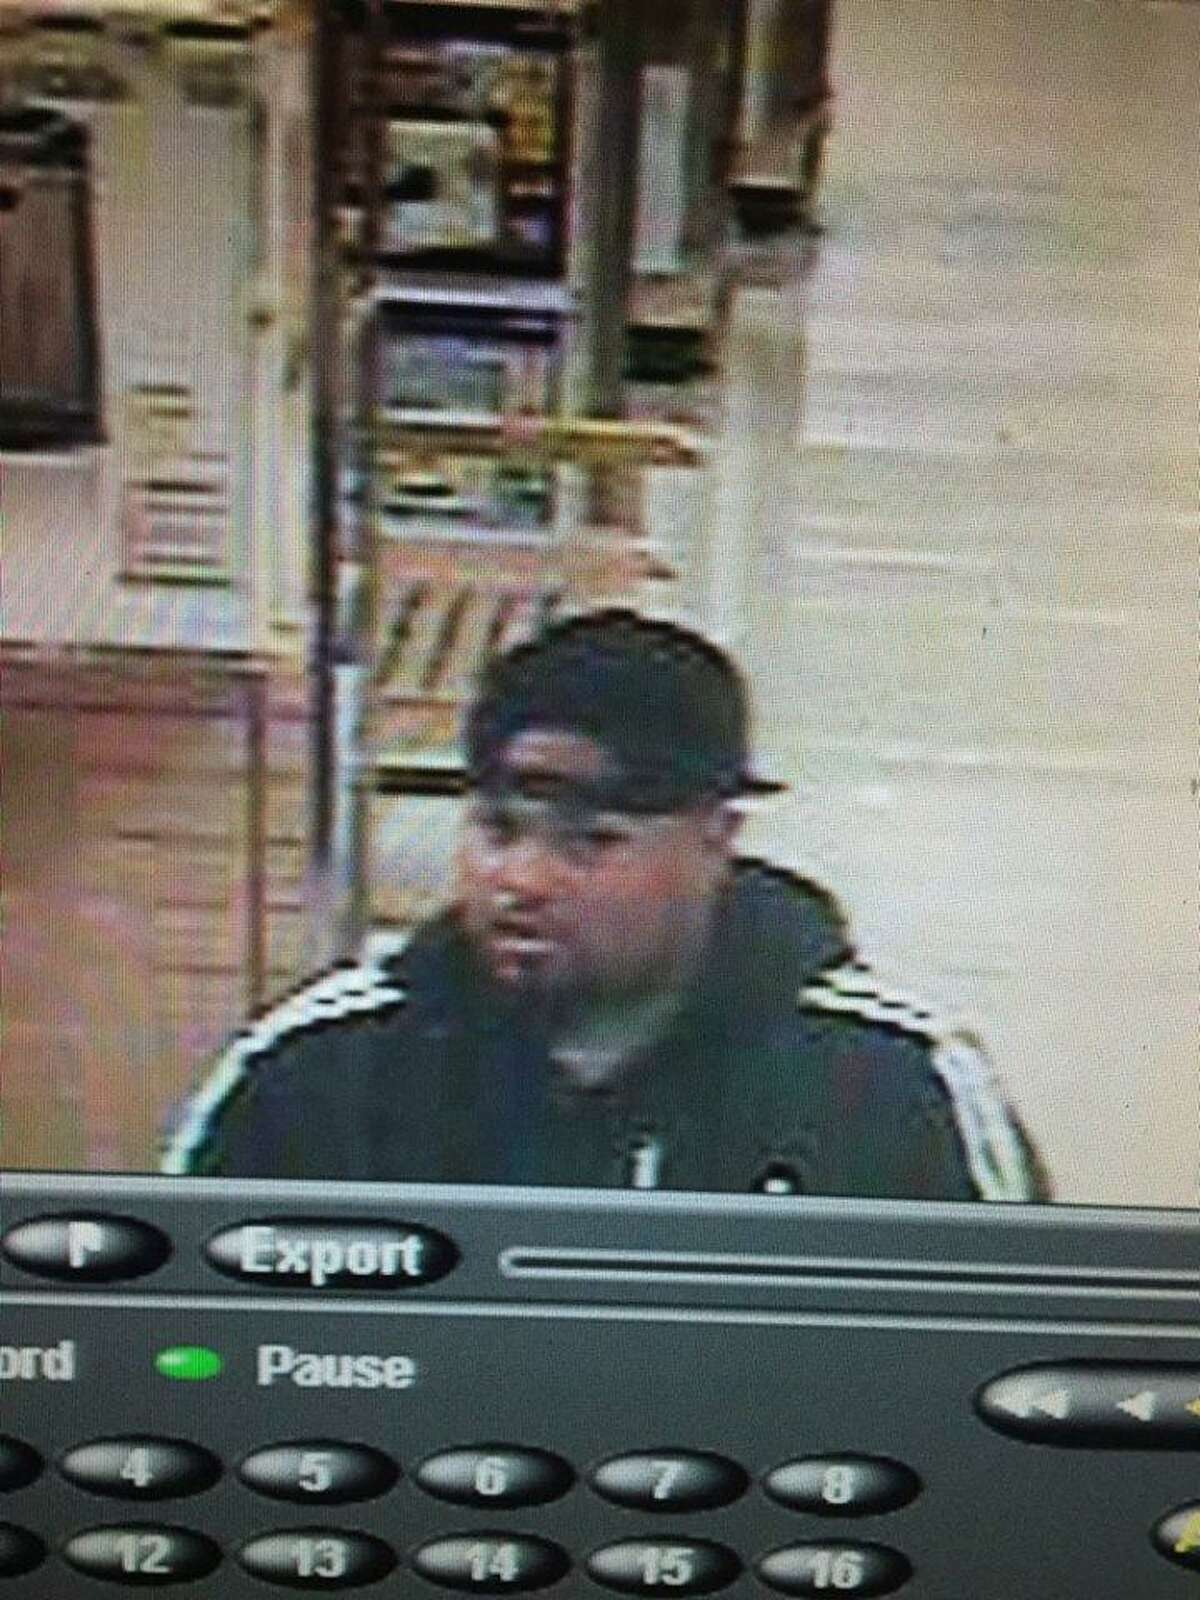 Police are asking the public's help in identifying the suspect as they continue their search.